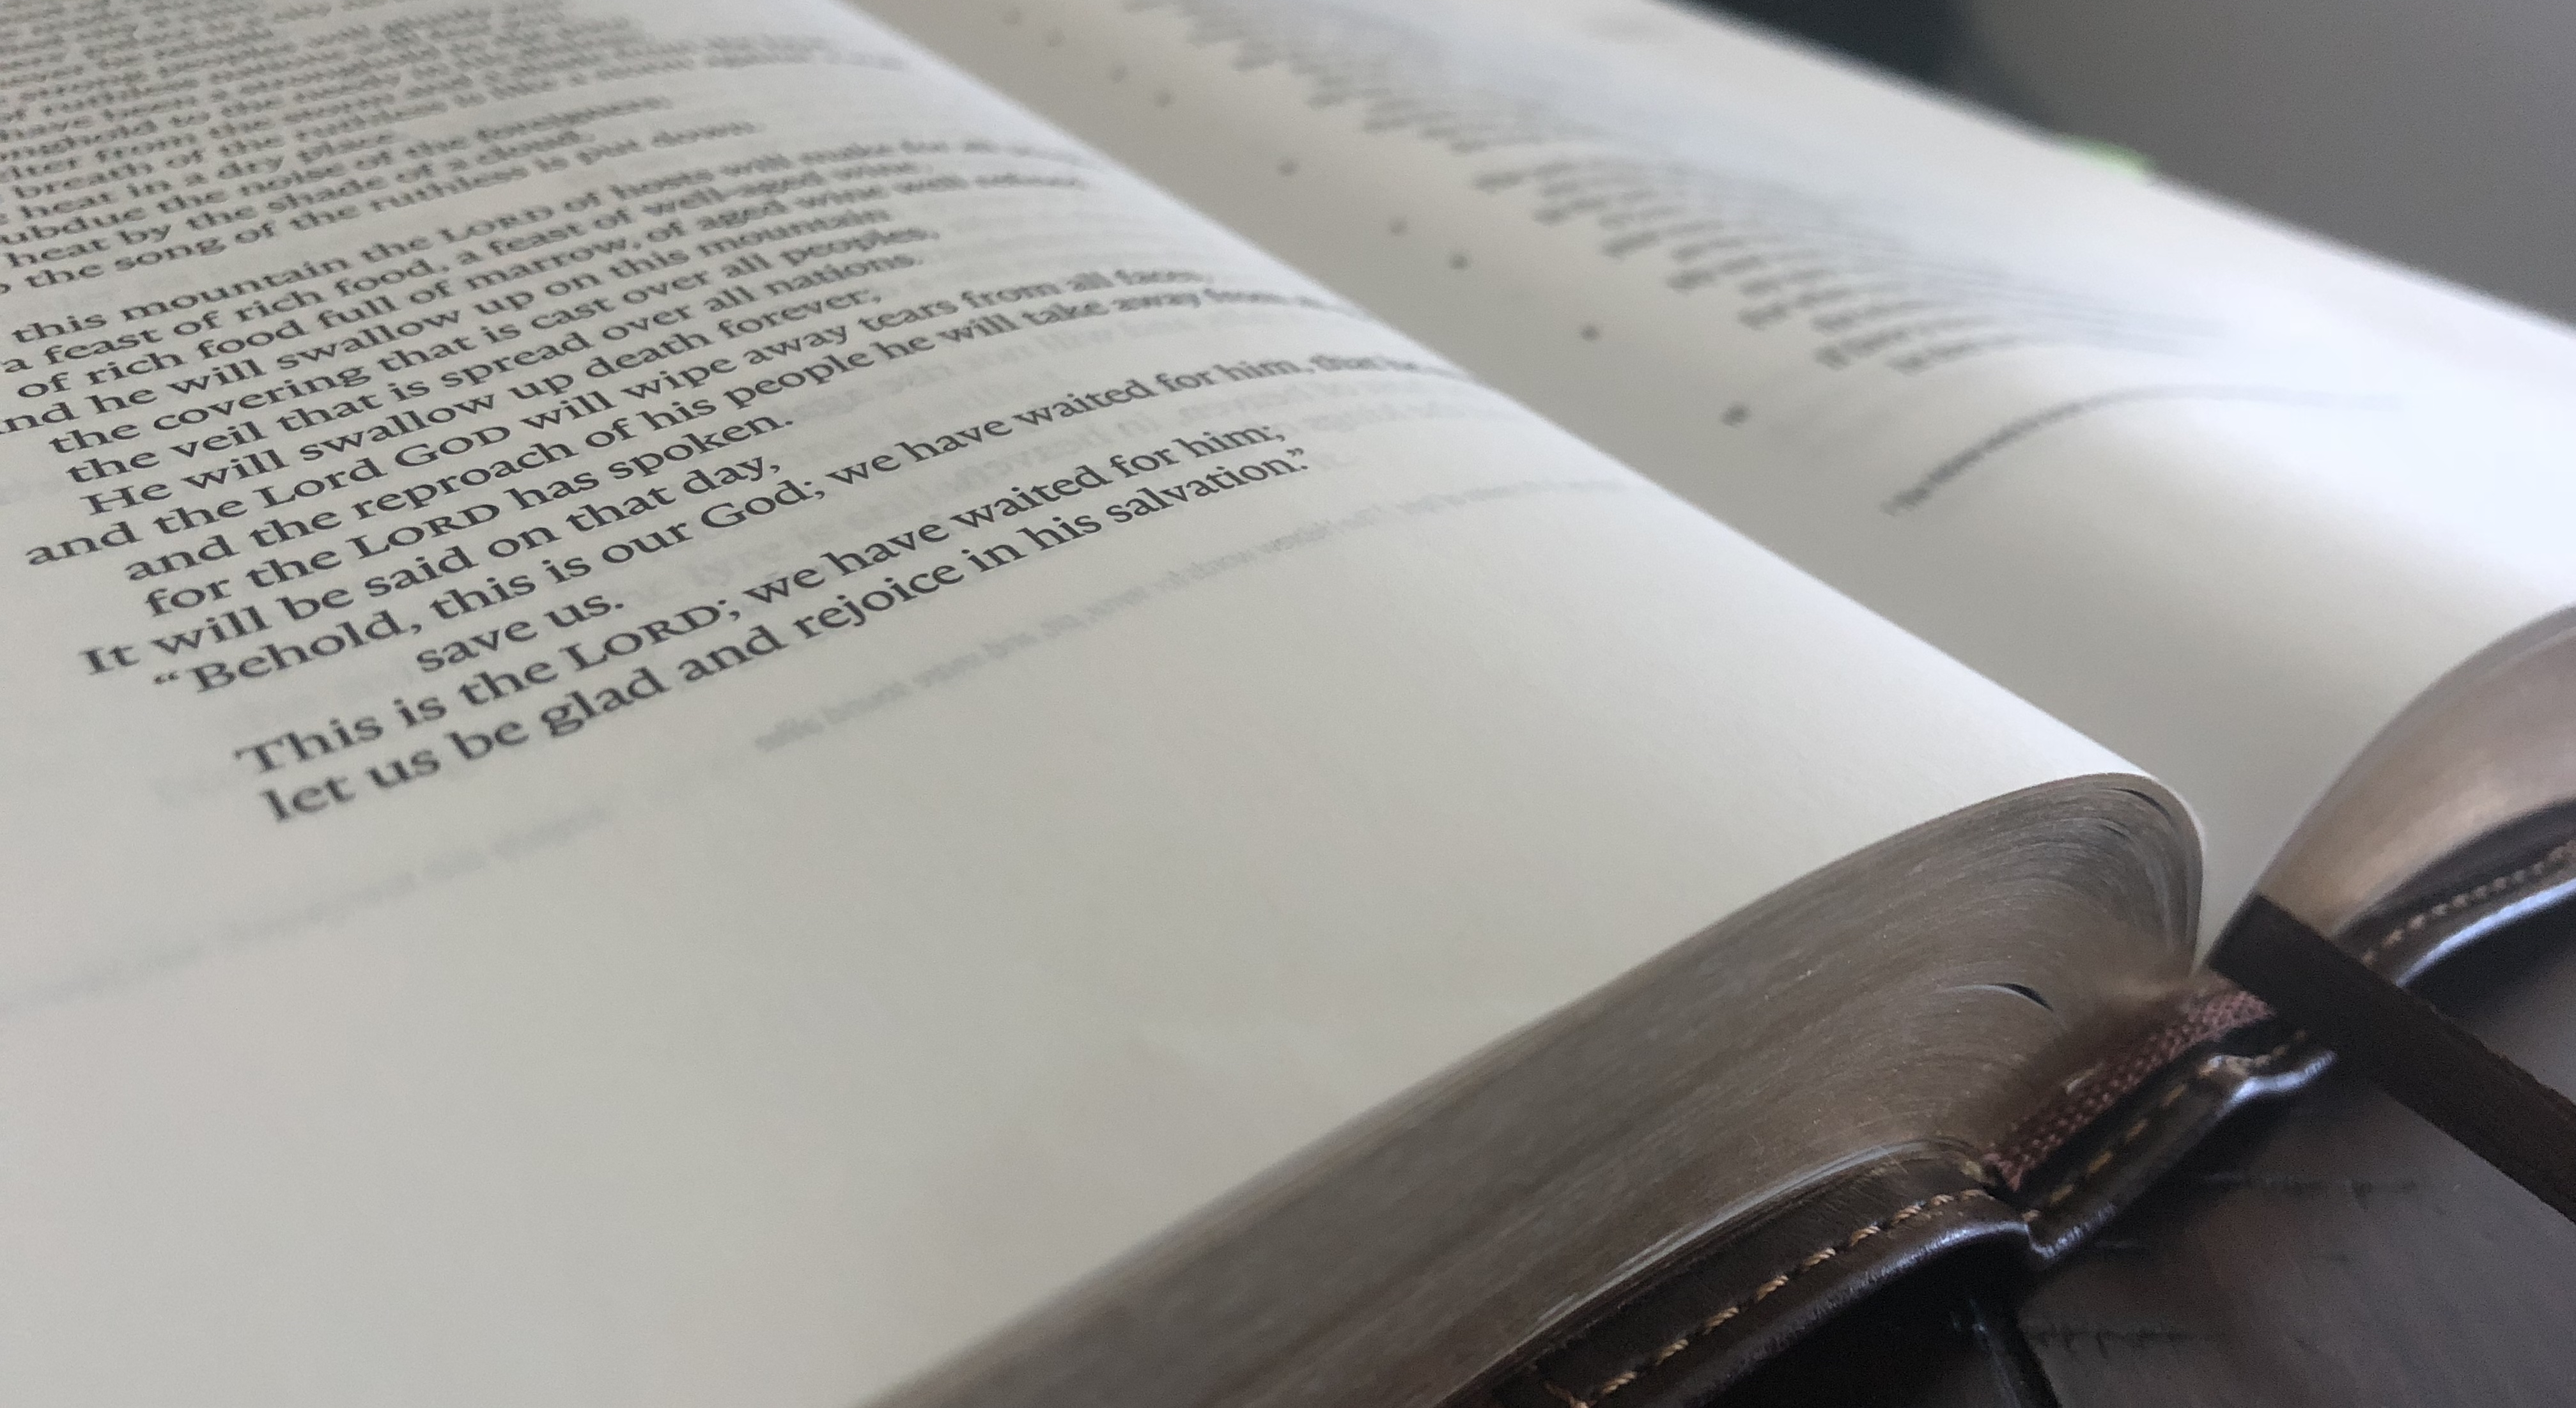 Just Bible 5 image